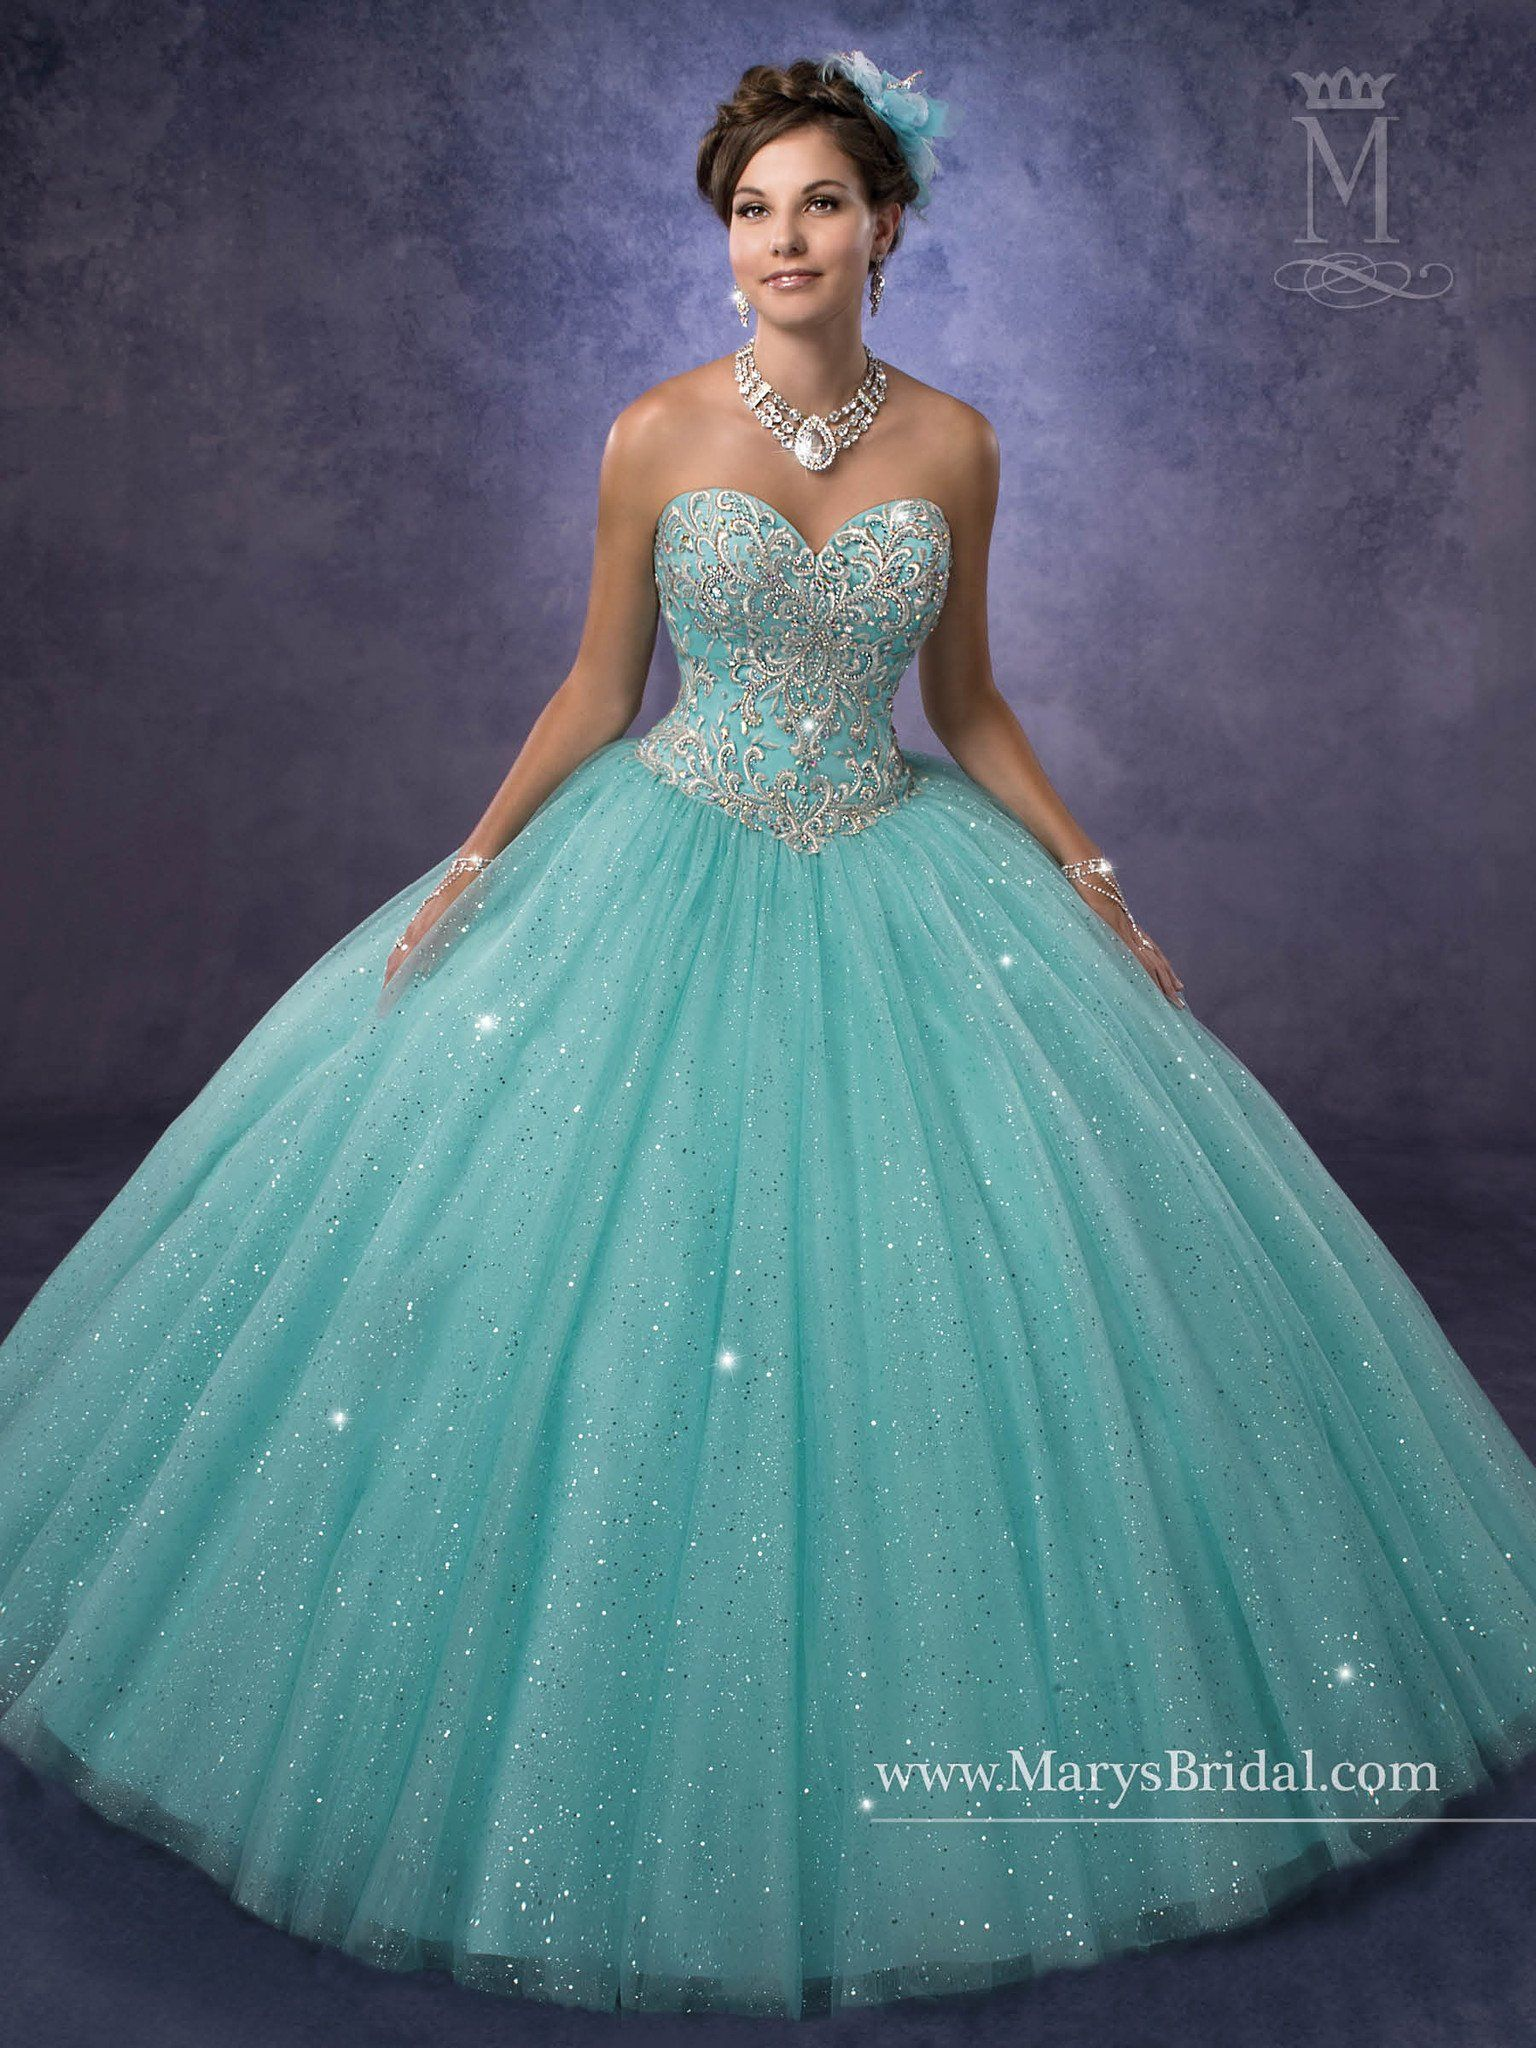 Mary\'s Bridal Princess Collection Quinceanera Dress Style 4Q470 ...